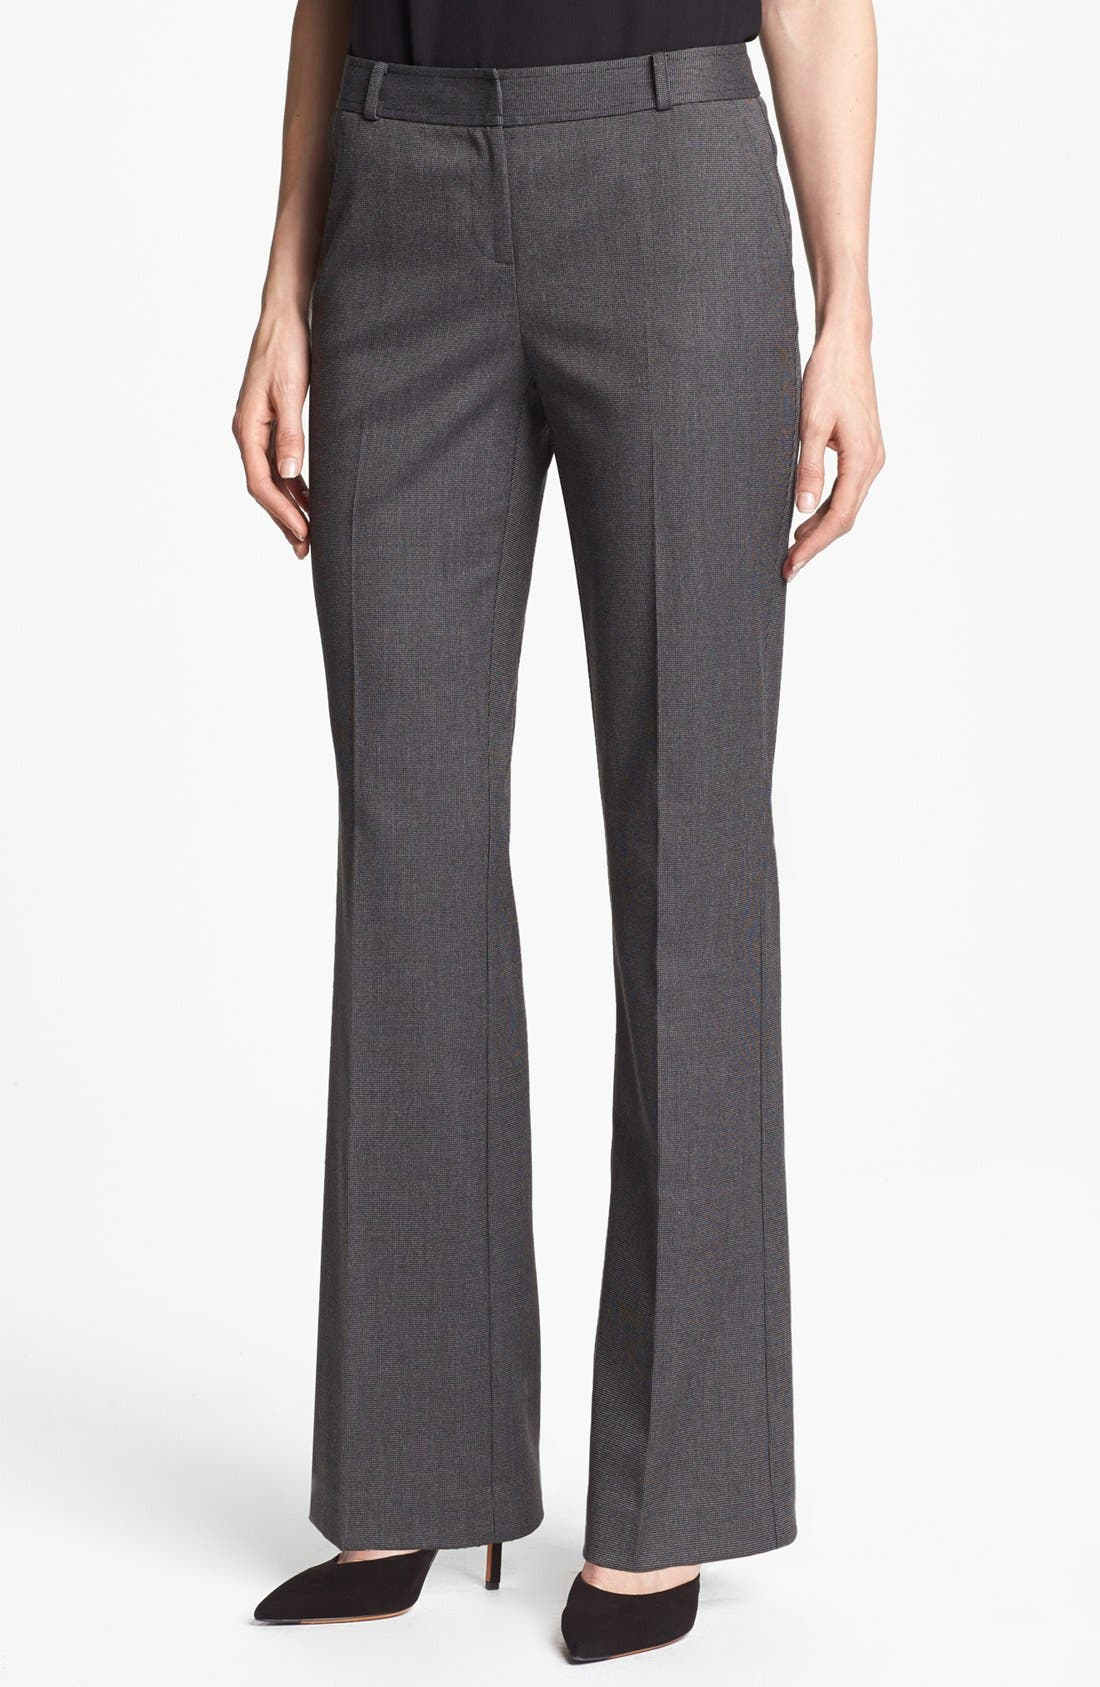 Alternate Image 1 Selected - Halogen® 'Taylor' Tweed Pants (Petite)